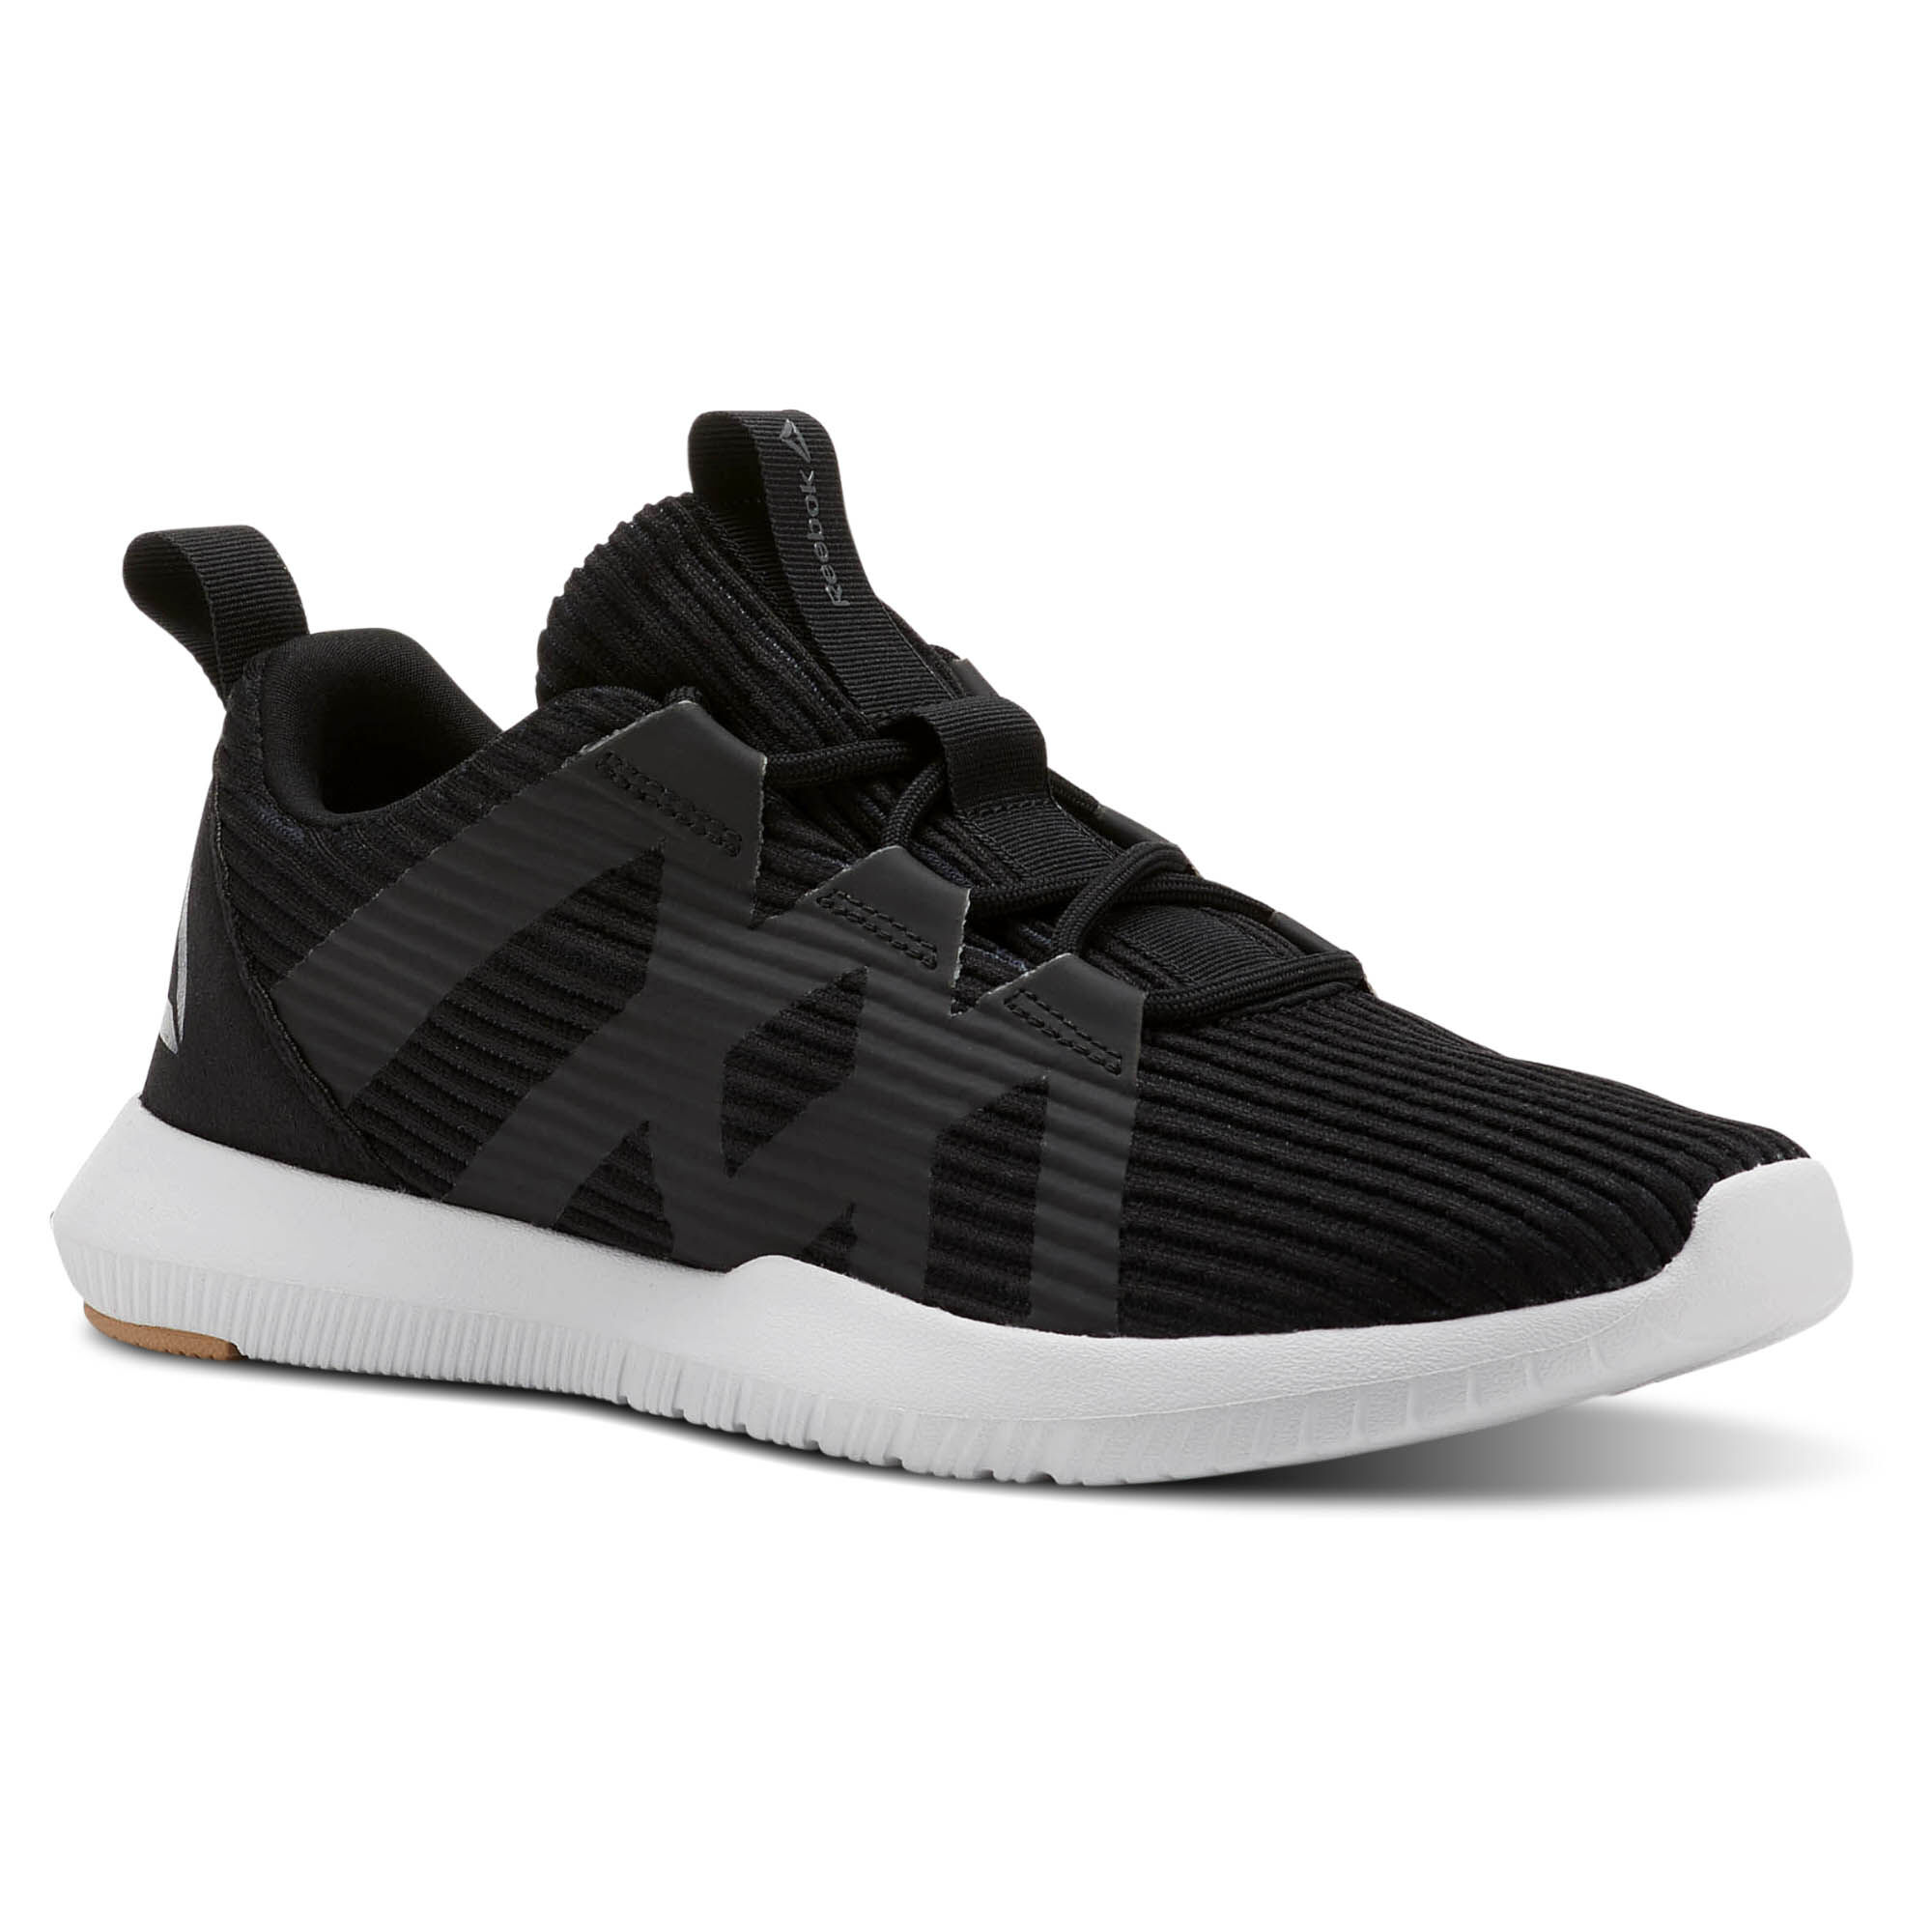 Reebok REAGO PULSE - Sports shoes - coal/black/tan/grey c6HzBqG